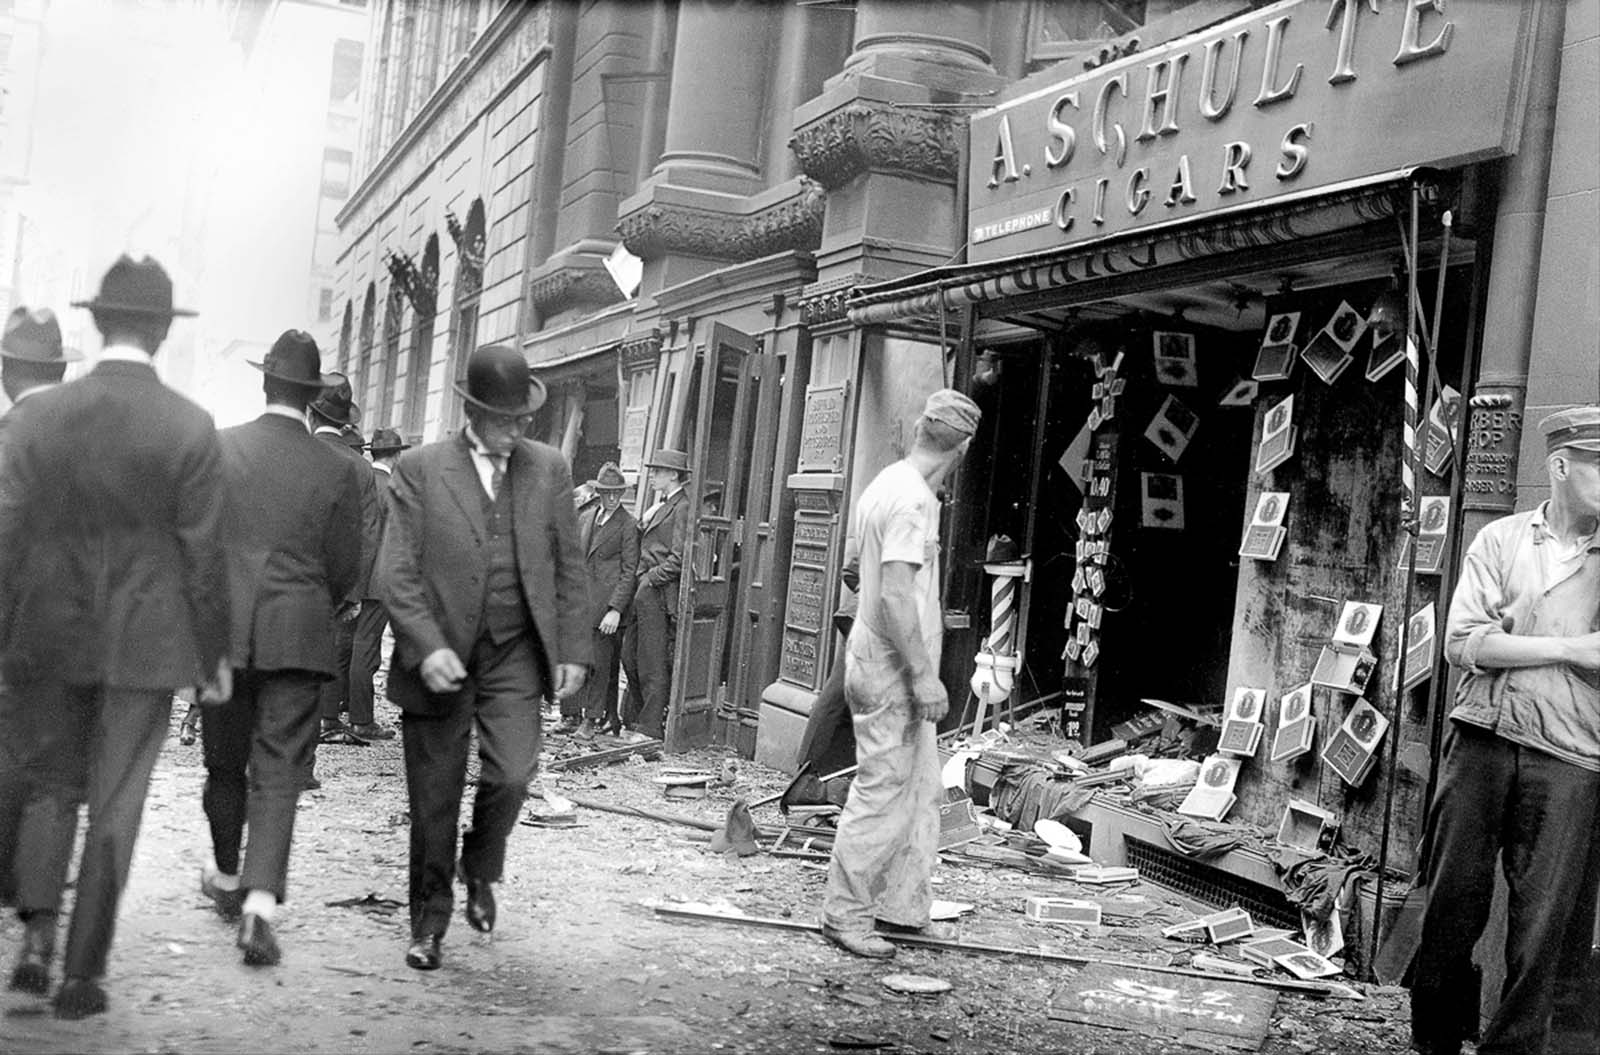 Bystanders walk by the wrecked facade of a cigar store.